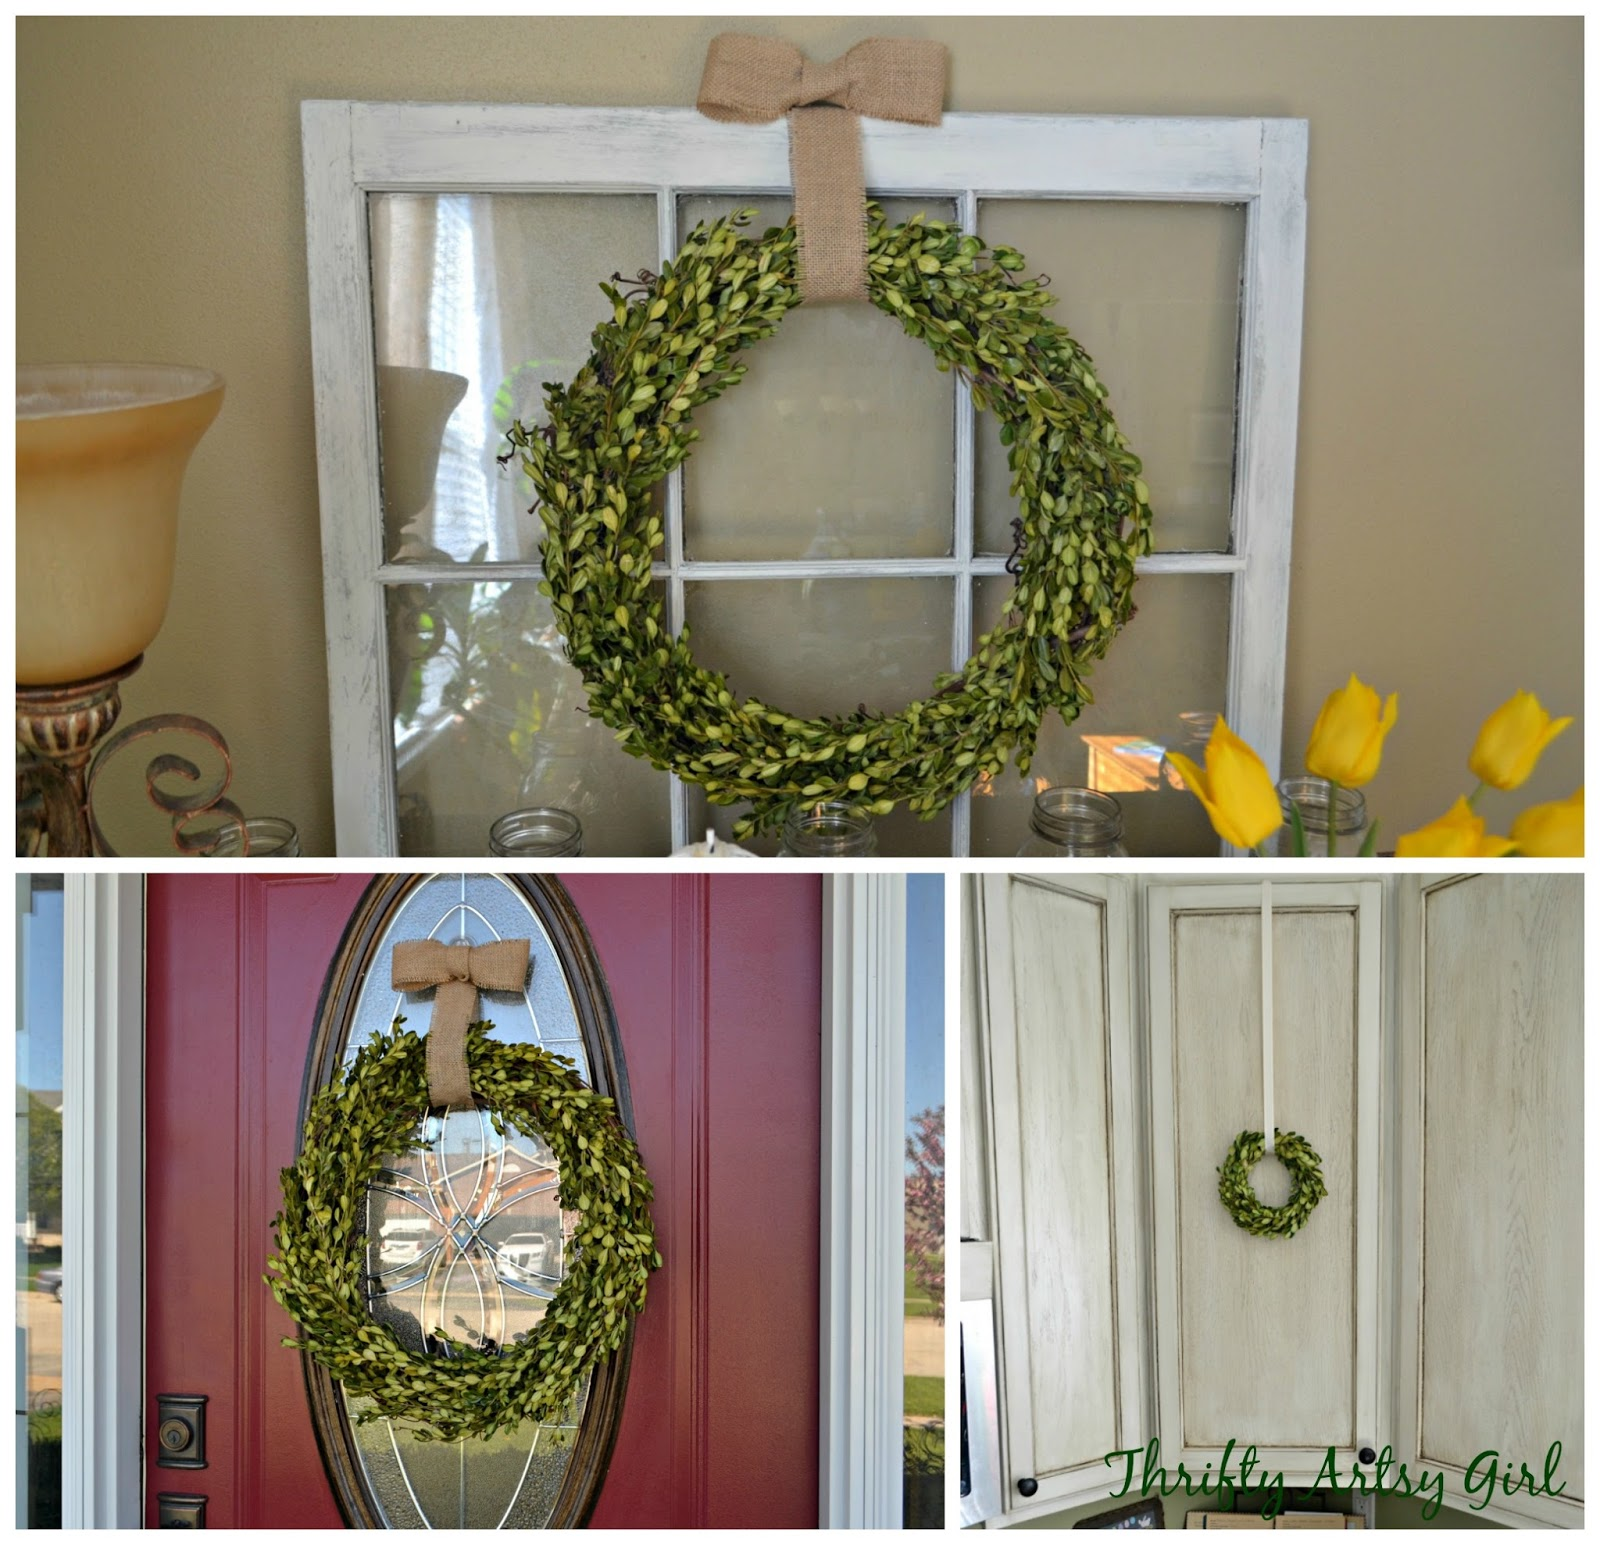 Thrifty Artsy Girl: 3 Easy DIY Boxwood Wreaths For About